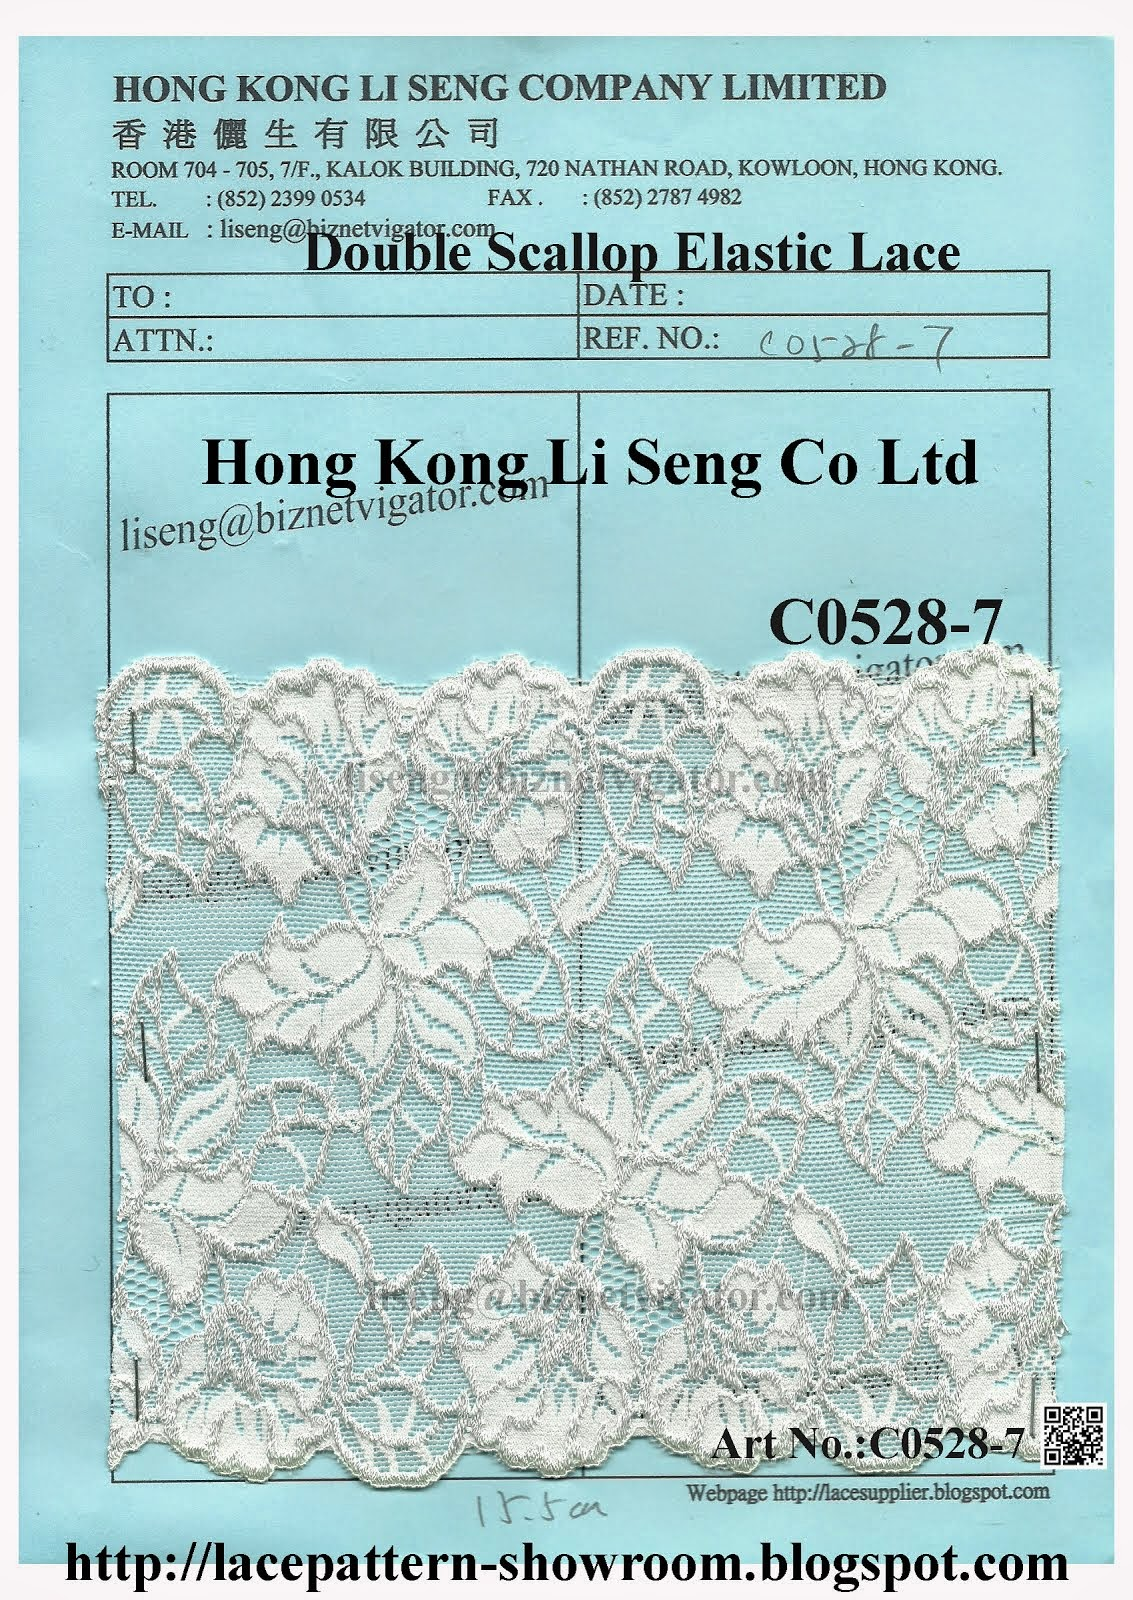 Double Scallop Elastic Lace Manufacturer Wholesaler and Supplier - Hong Kong Li Seng Co Ltd